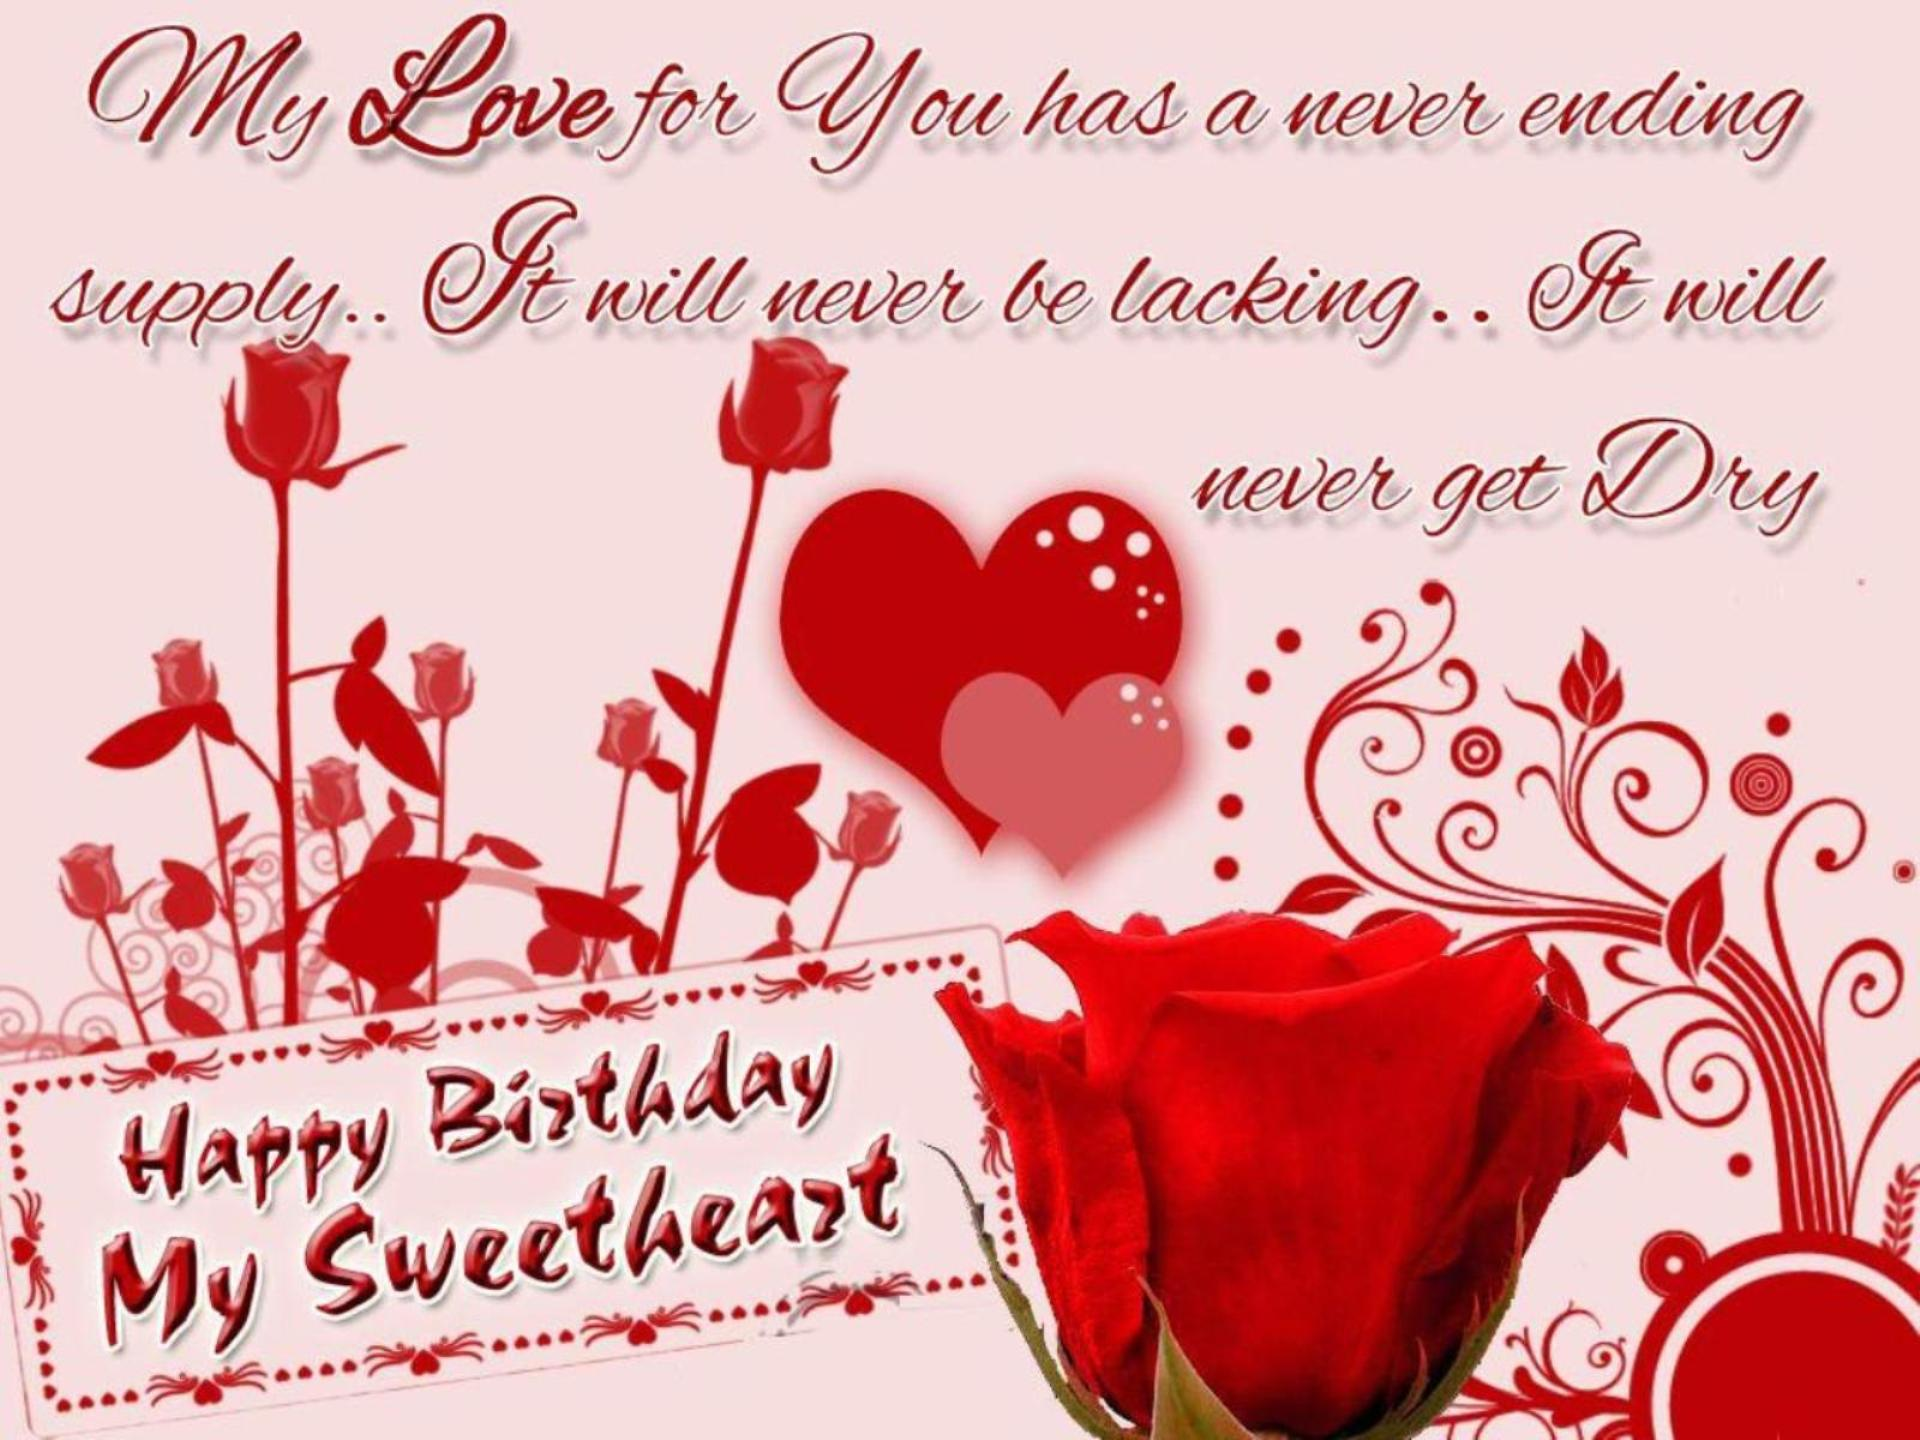 Lovely And Beautiful Birthday Wishes To Make Your Girlfriend Happy On Her Birthday